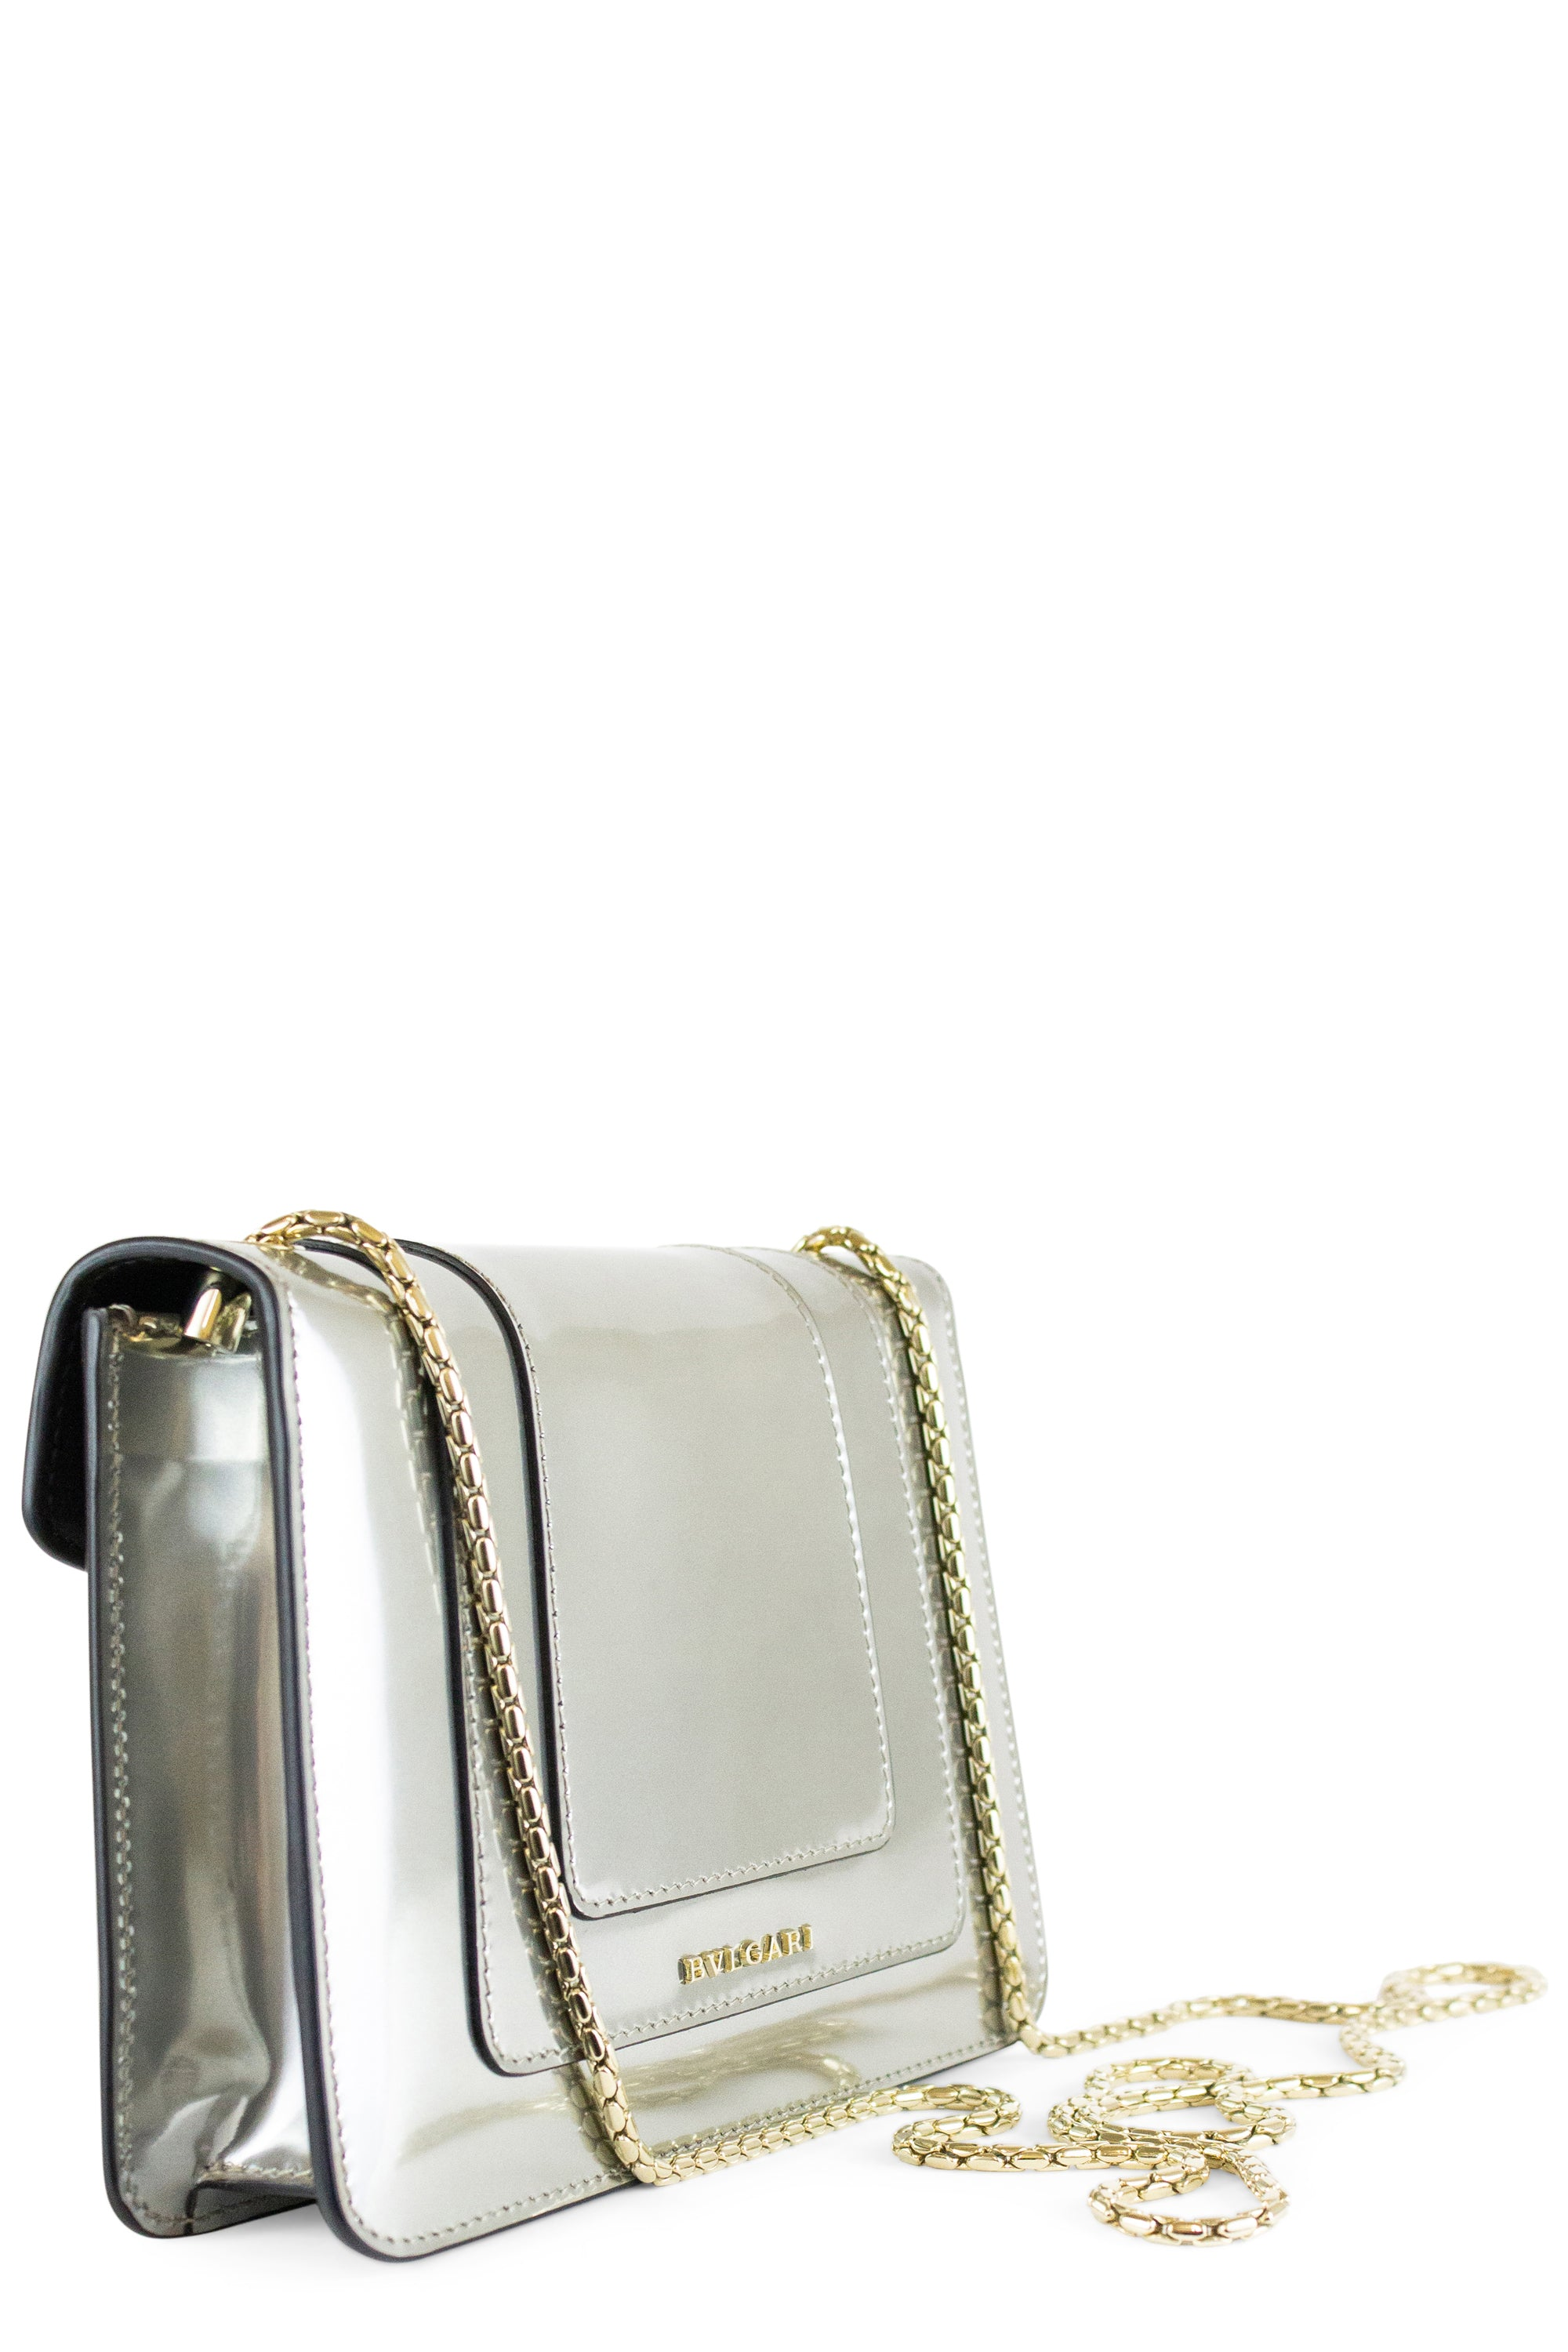 BVLGARI Flap Cover Bag Serpenti